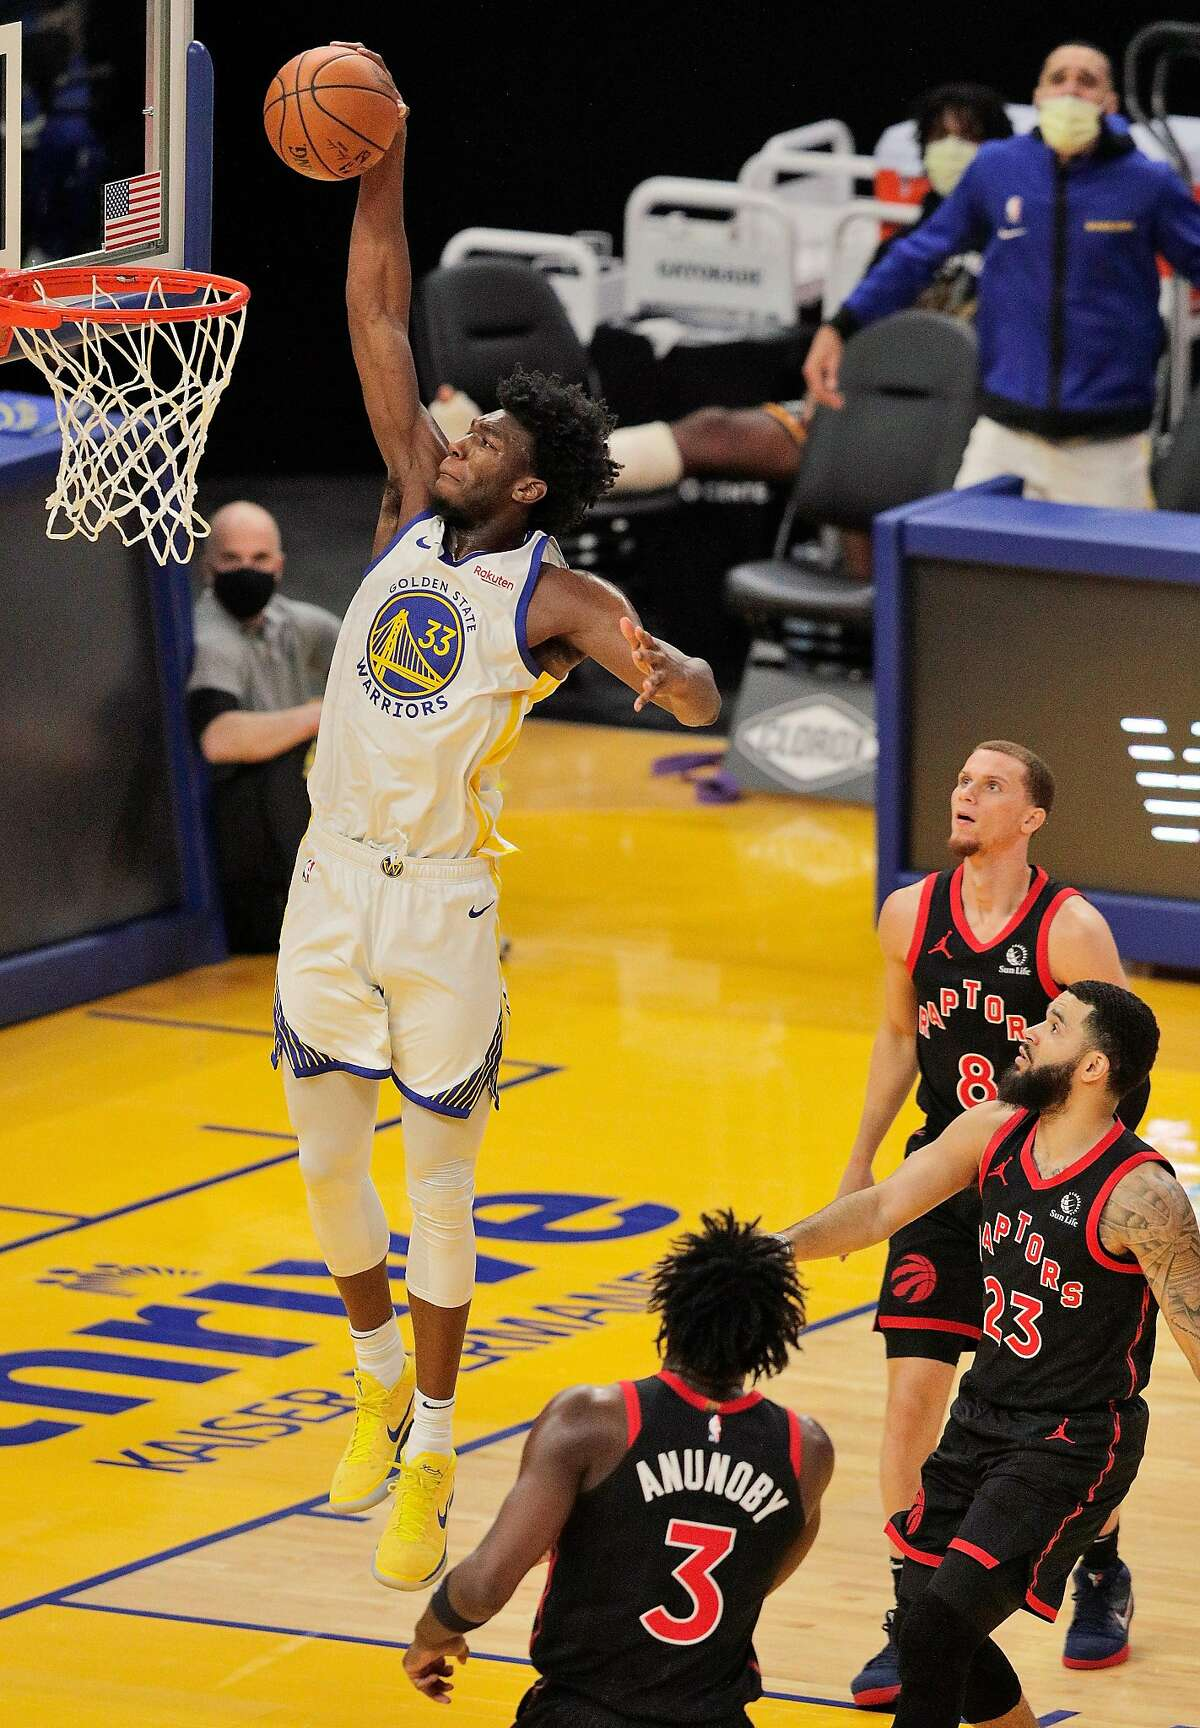 The Warriors' James Wiseman, a rookie center rising quickly, rises up high to dunk over three Raptors in the first half.